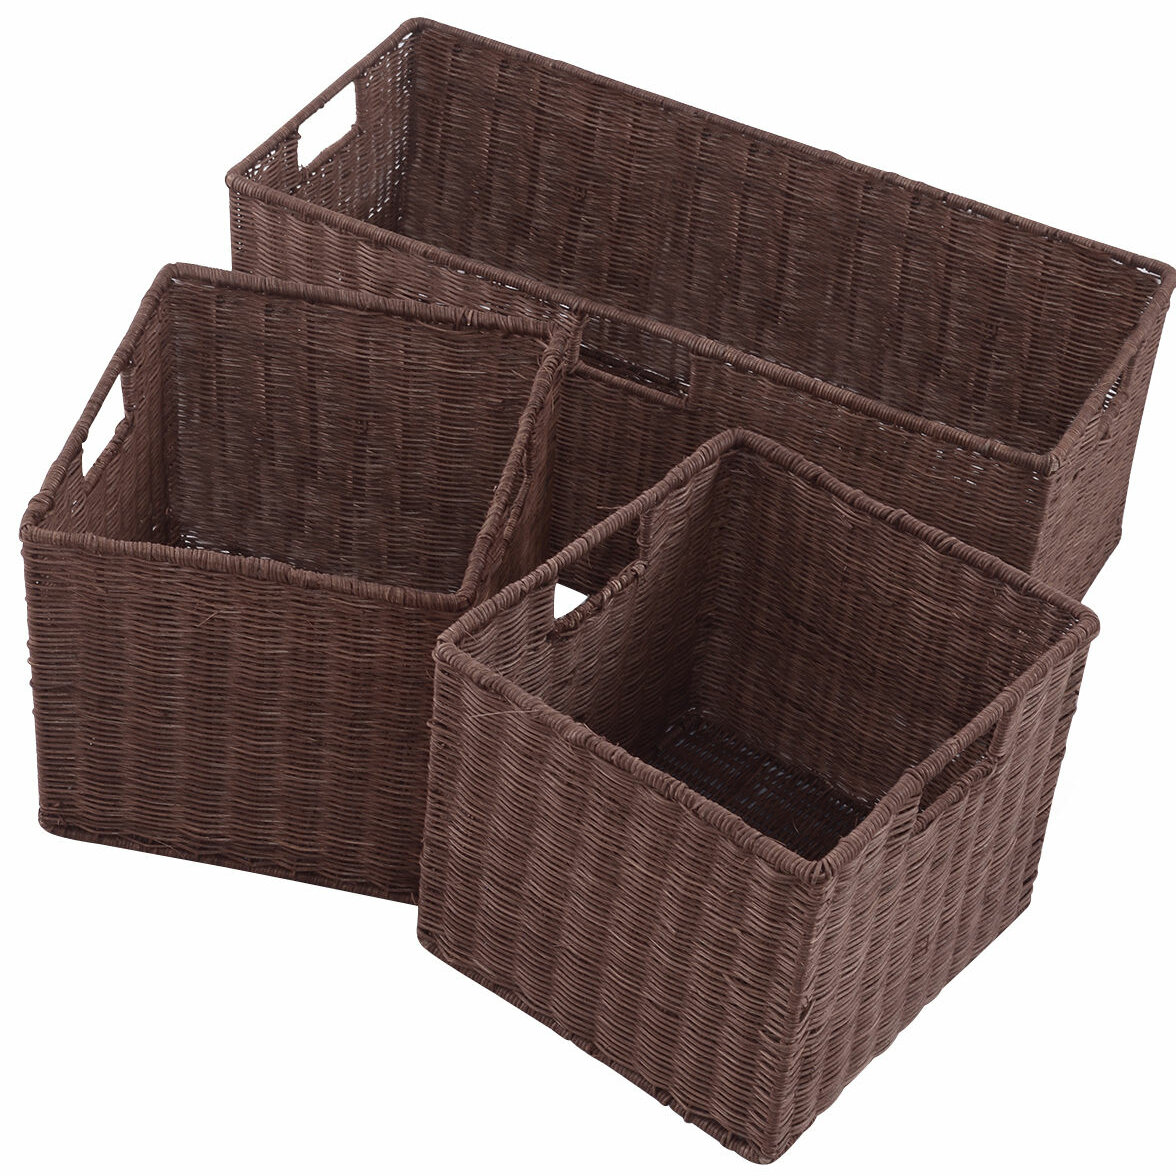 Gracie Oaks Storage Nesting Cube 3 Piece Wicker Rattan Basket Set Wayfair